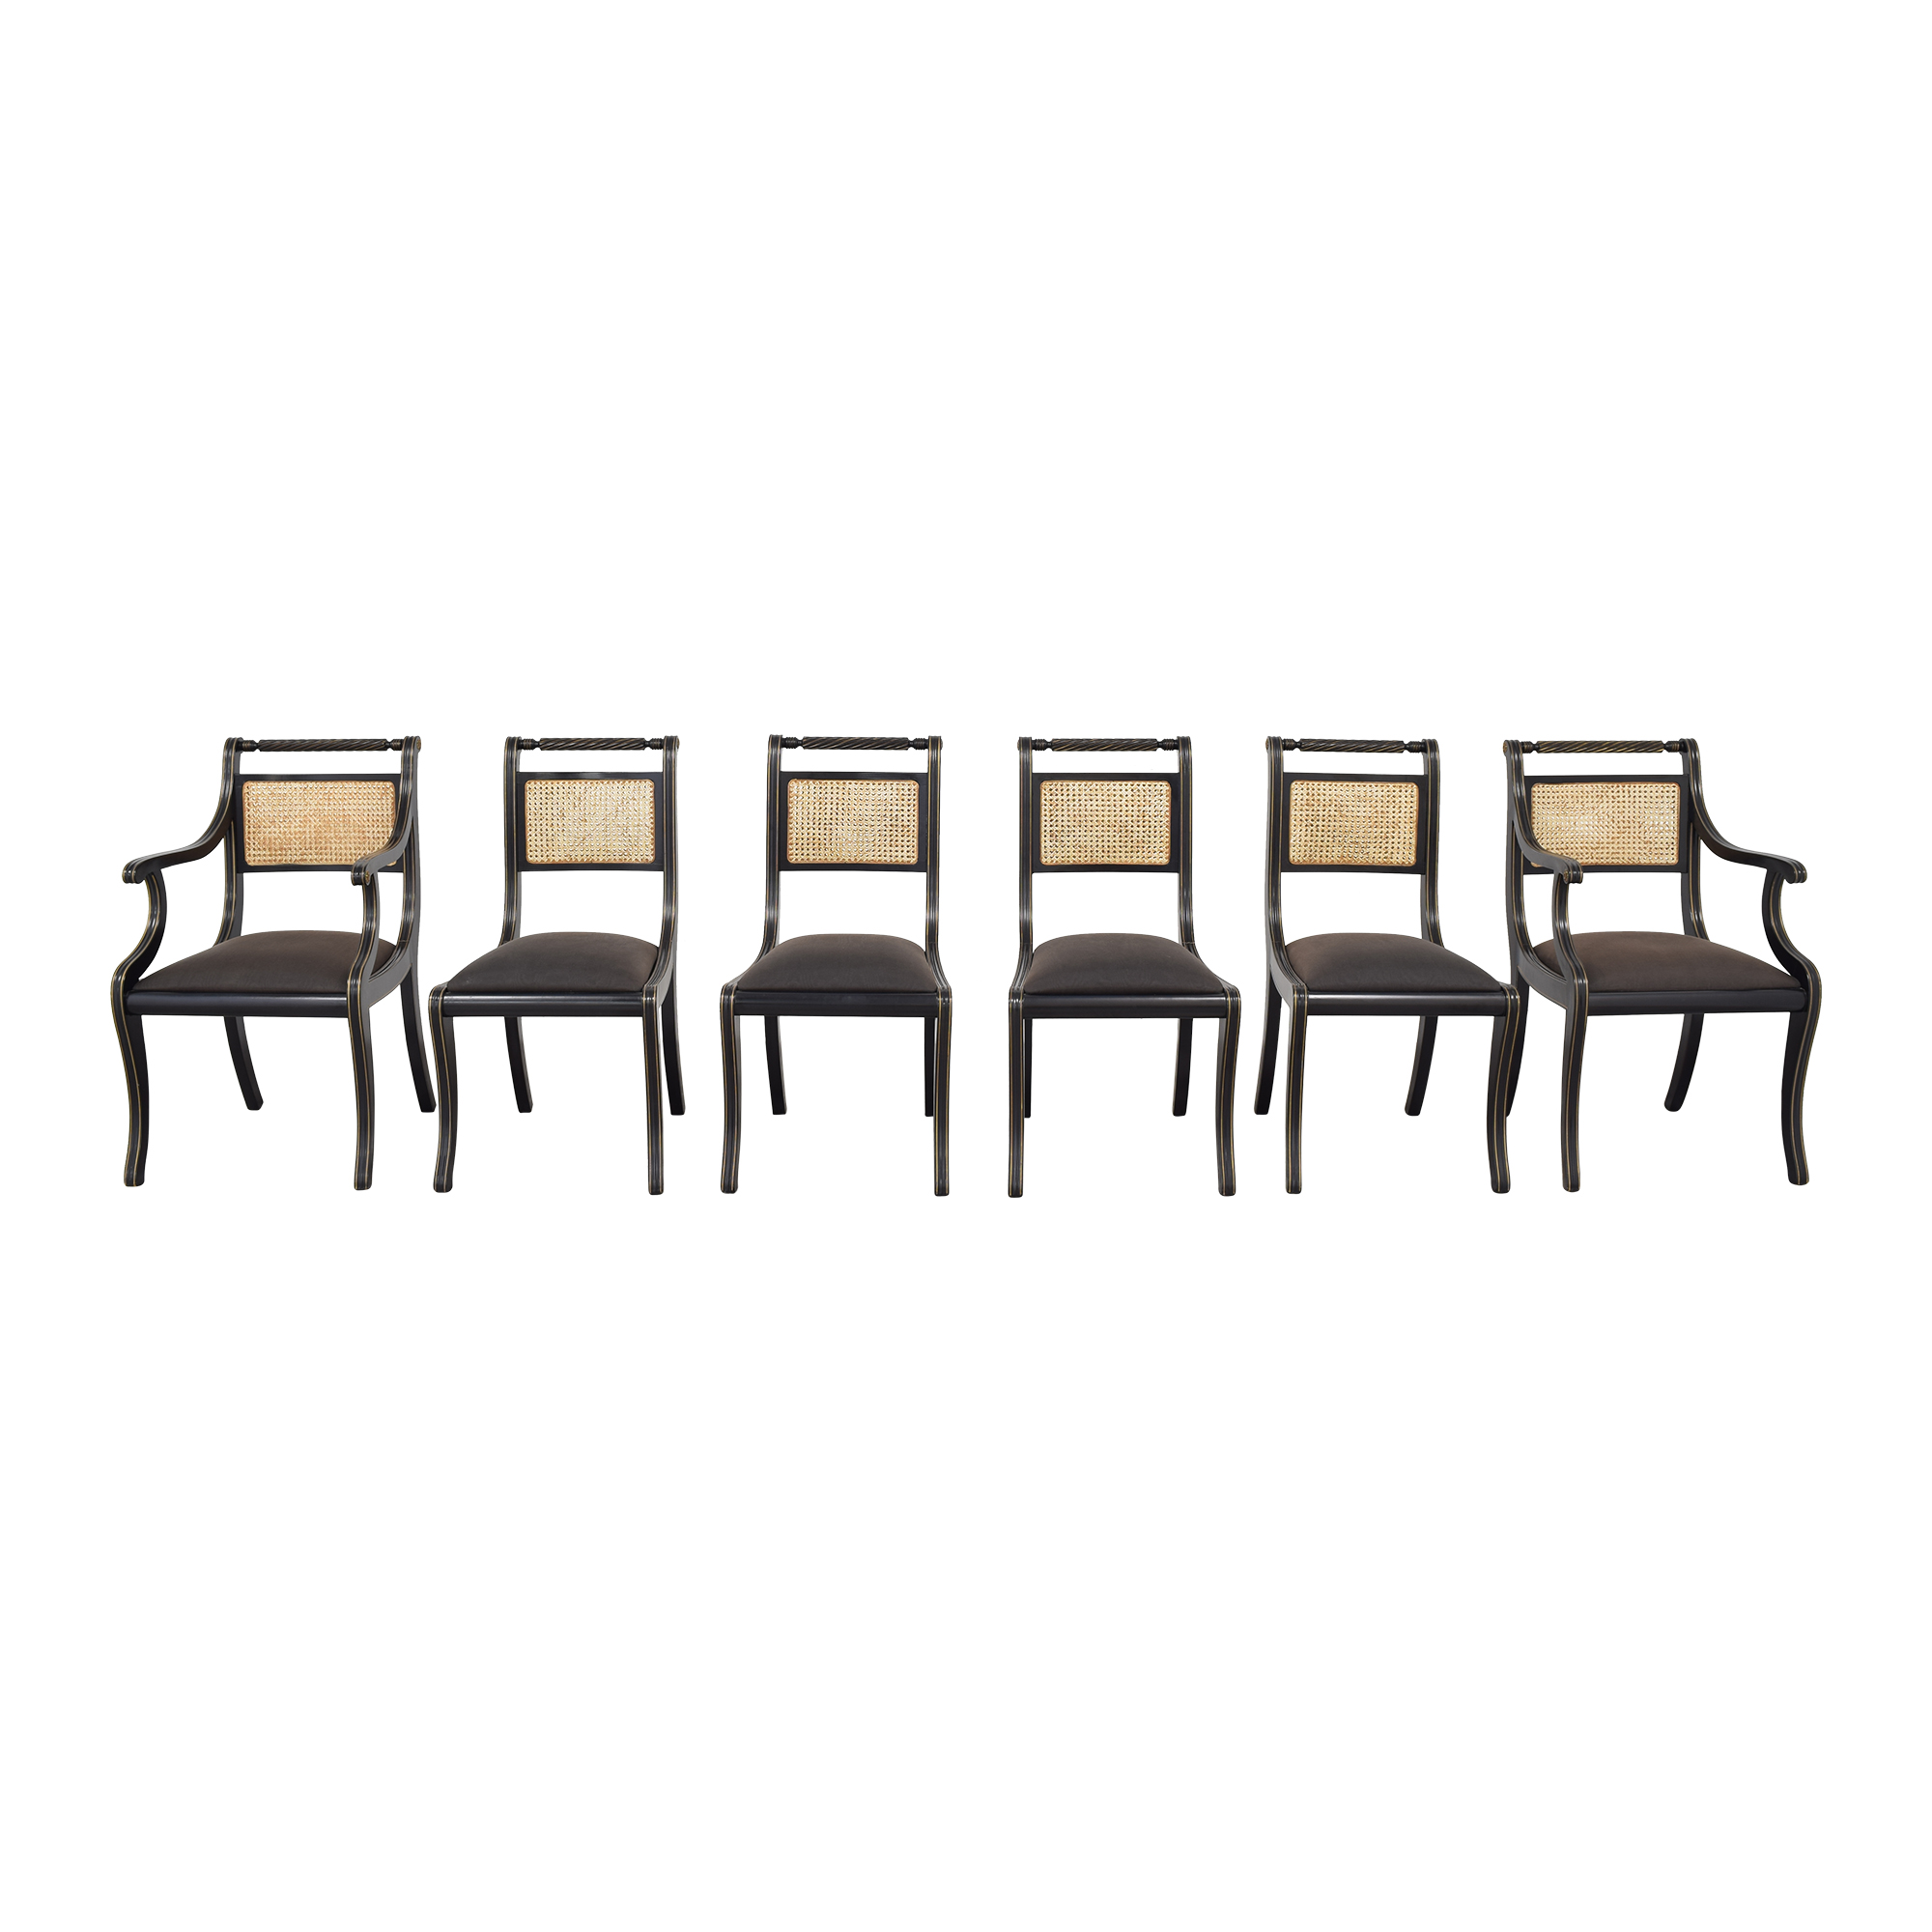 shop Bloomingdale's Italian Cane Back Dining Chairs Bloomingdale's Dining Chairs